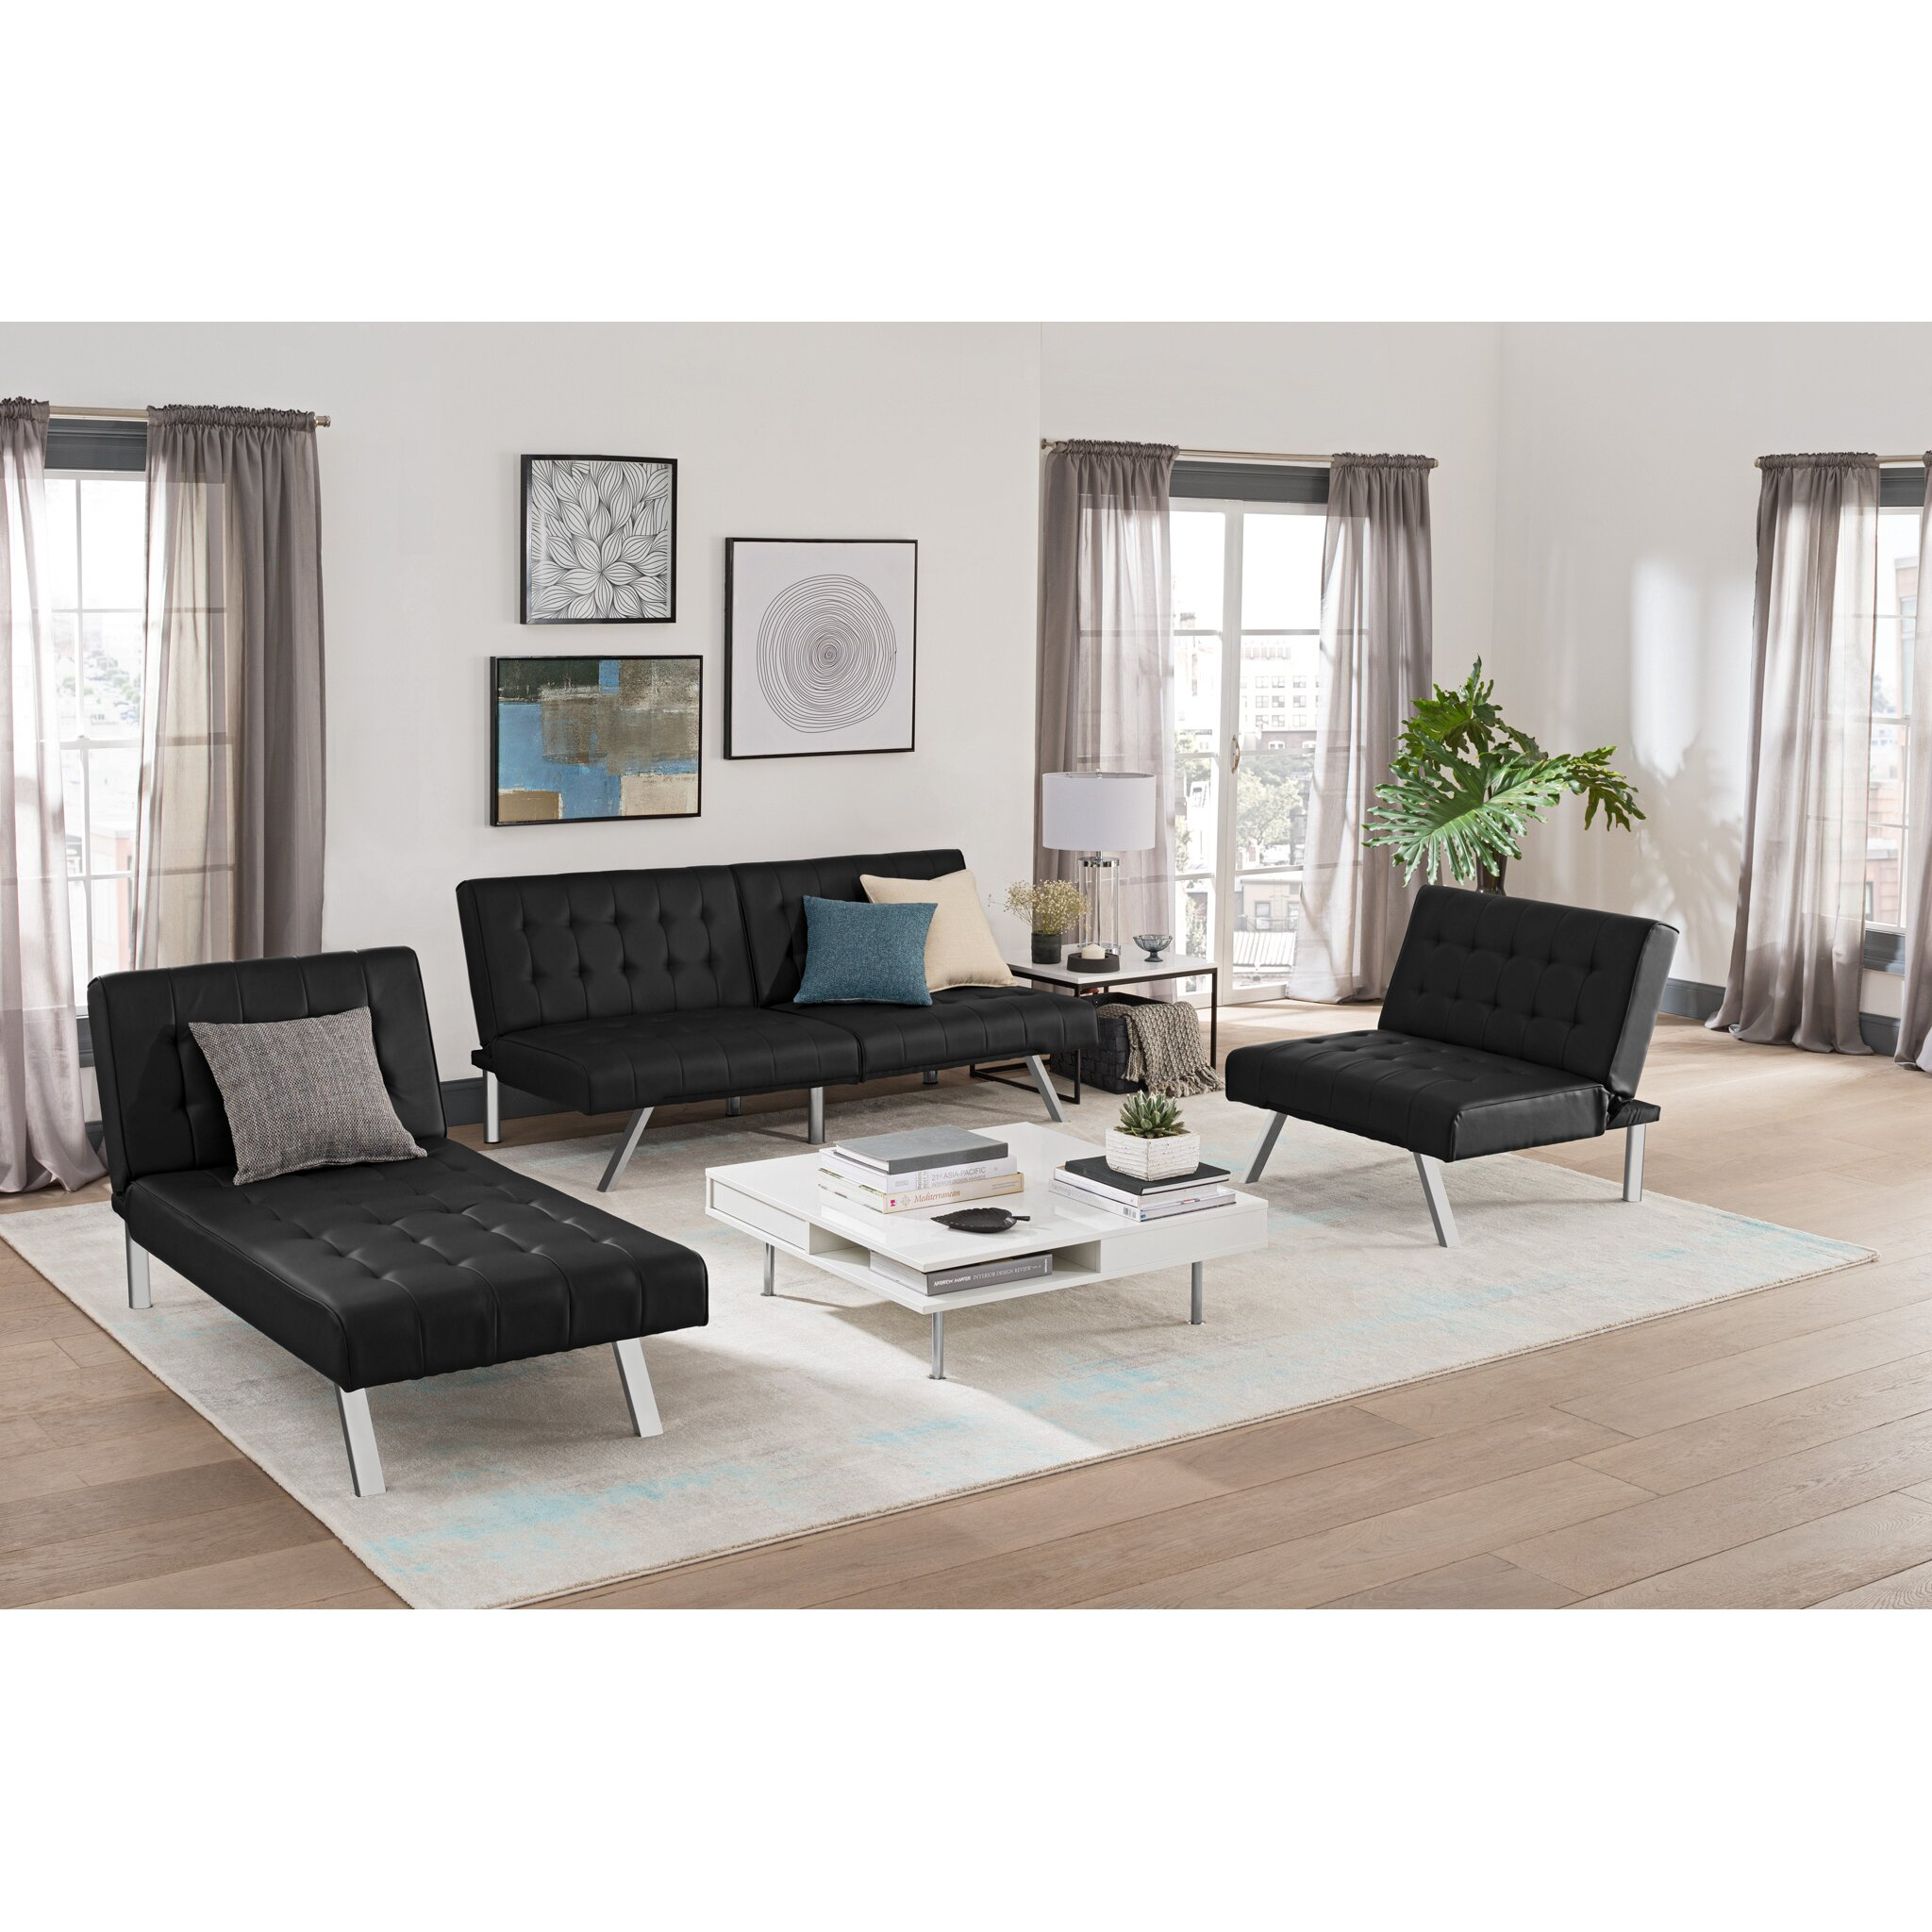 DHP Emily Convertible Futon & Reviews | Wayfair